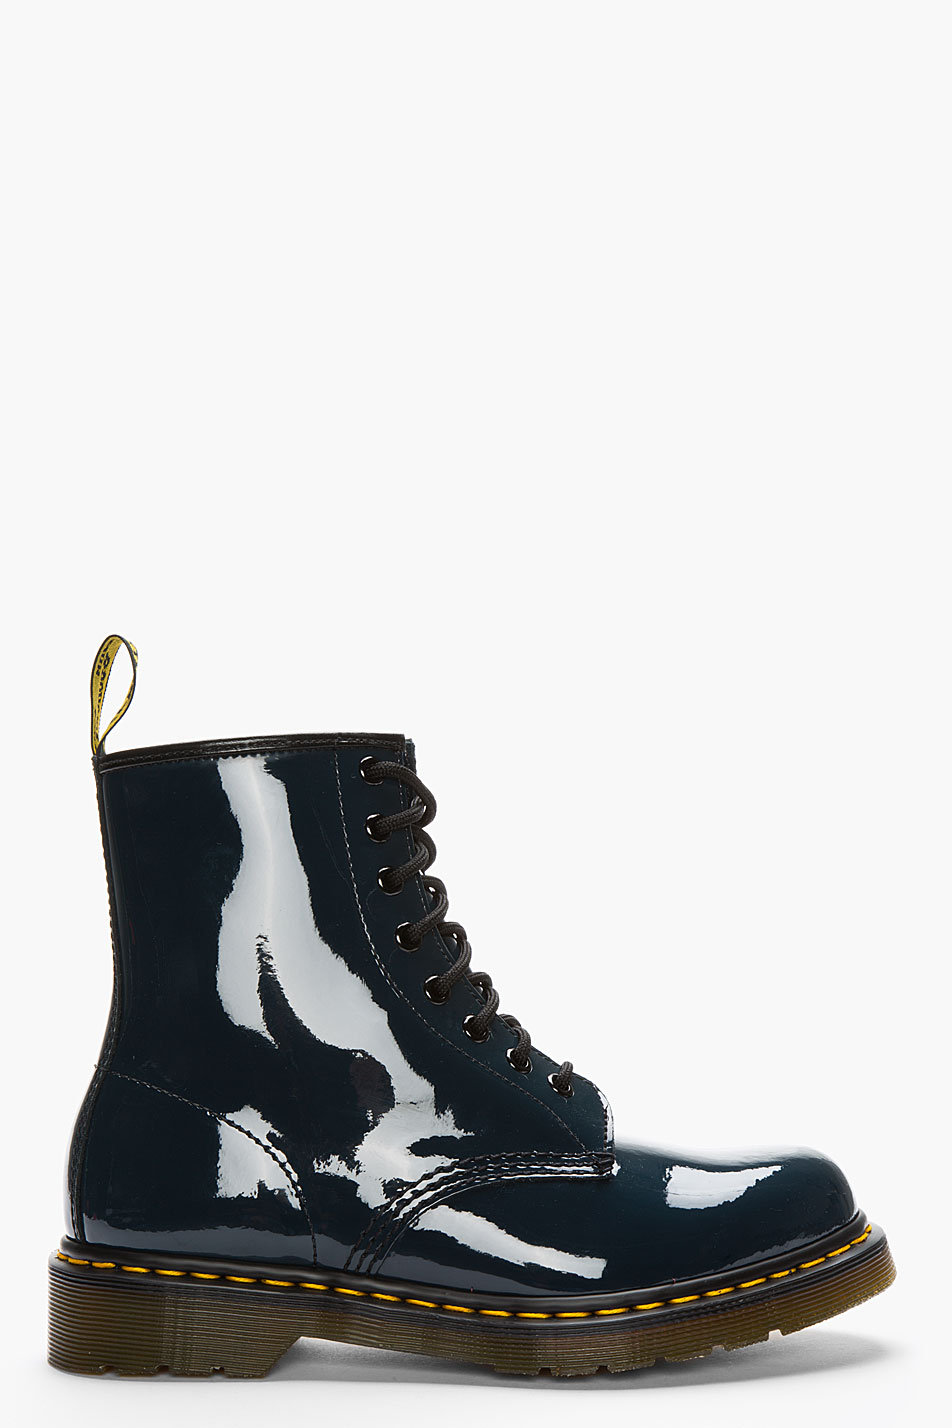 Lyst Dr Martens Navy Leather 8 Eye 1460 Boots In Blue